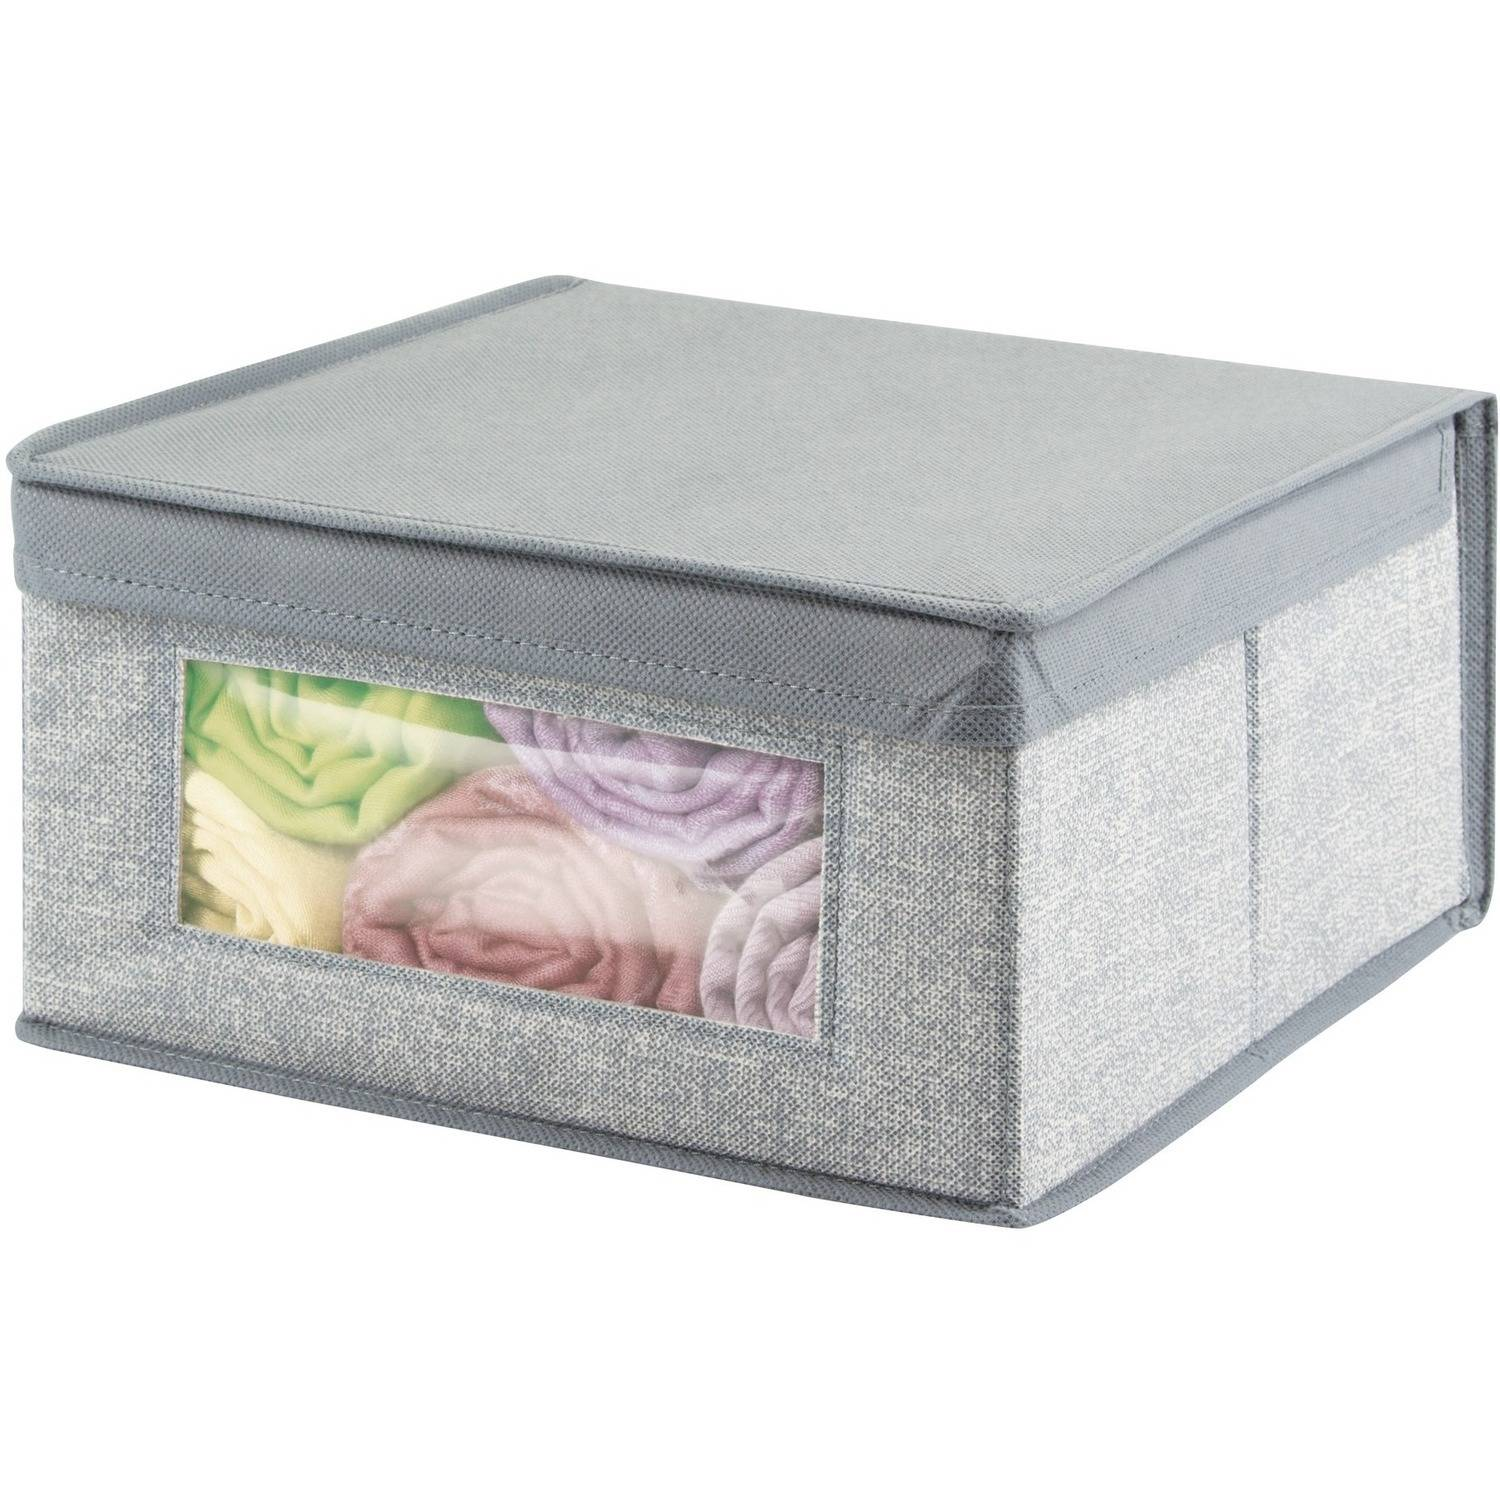 InterDesign Aldo Fabric Storage Box Various Sizes Grey  sc 1 st  Walmart.com & InterDesign Aldo Fabric Storage Box Various Sizes Grey - Walmart.com